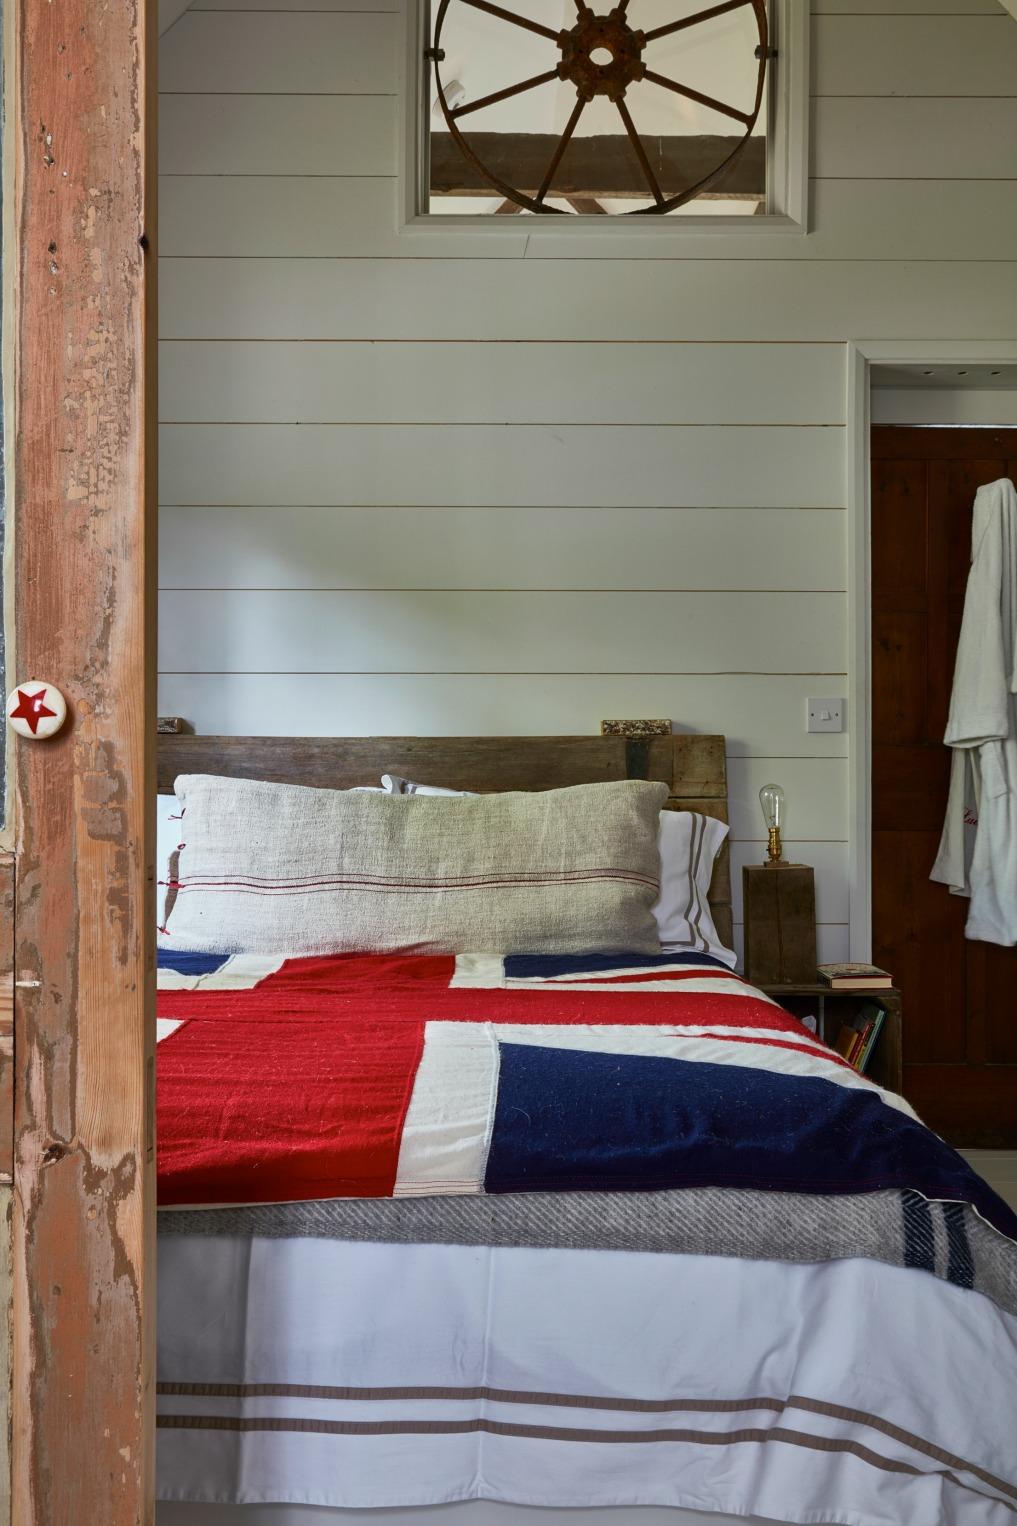 British Bedroom Decor from levitra 9us Vintage